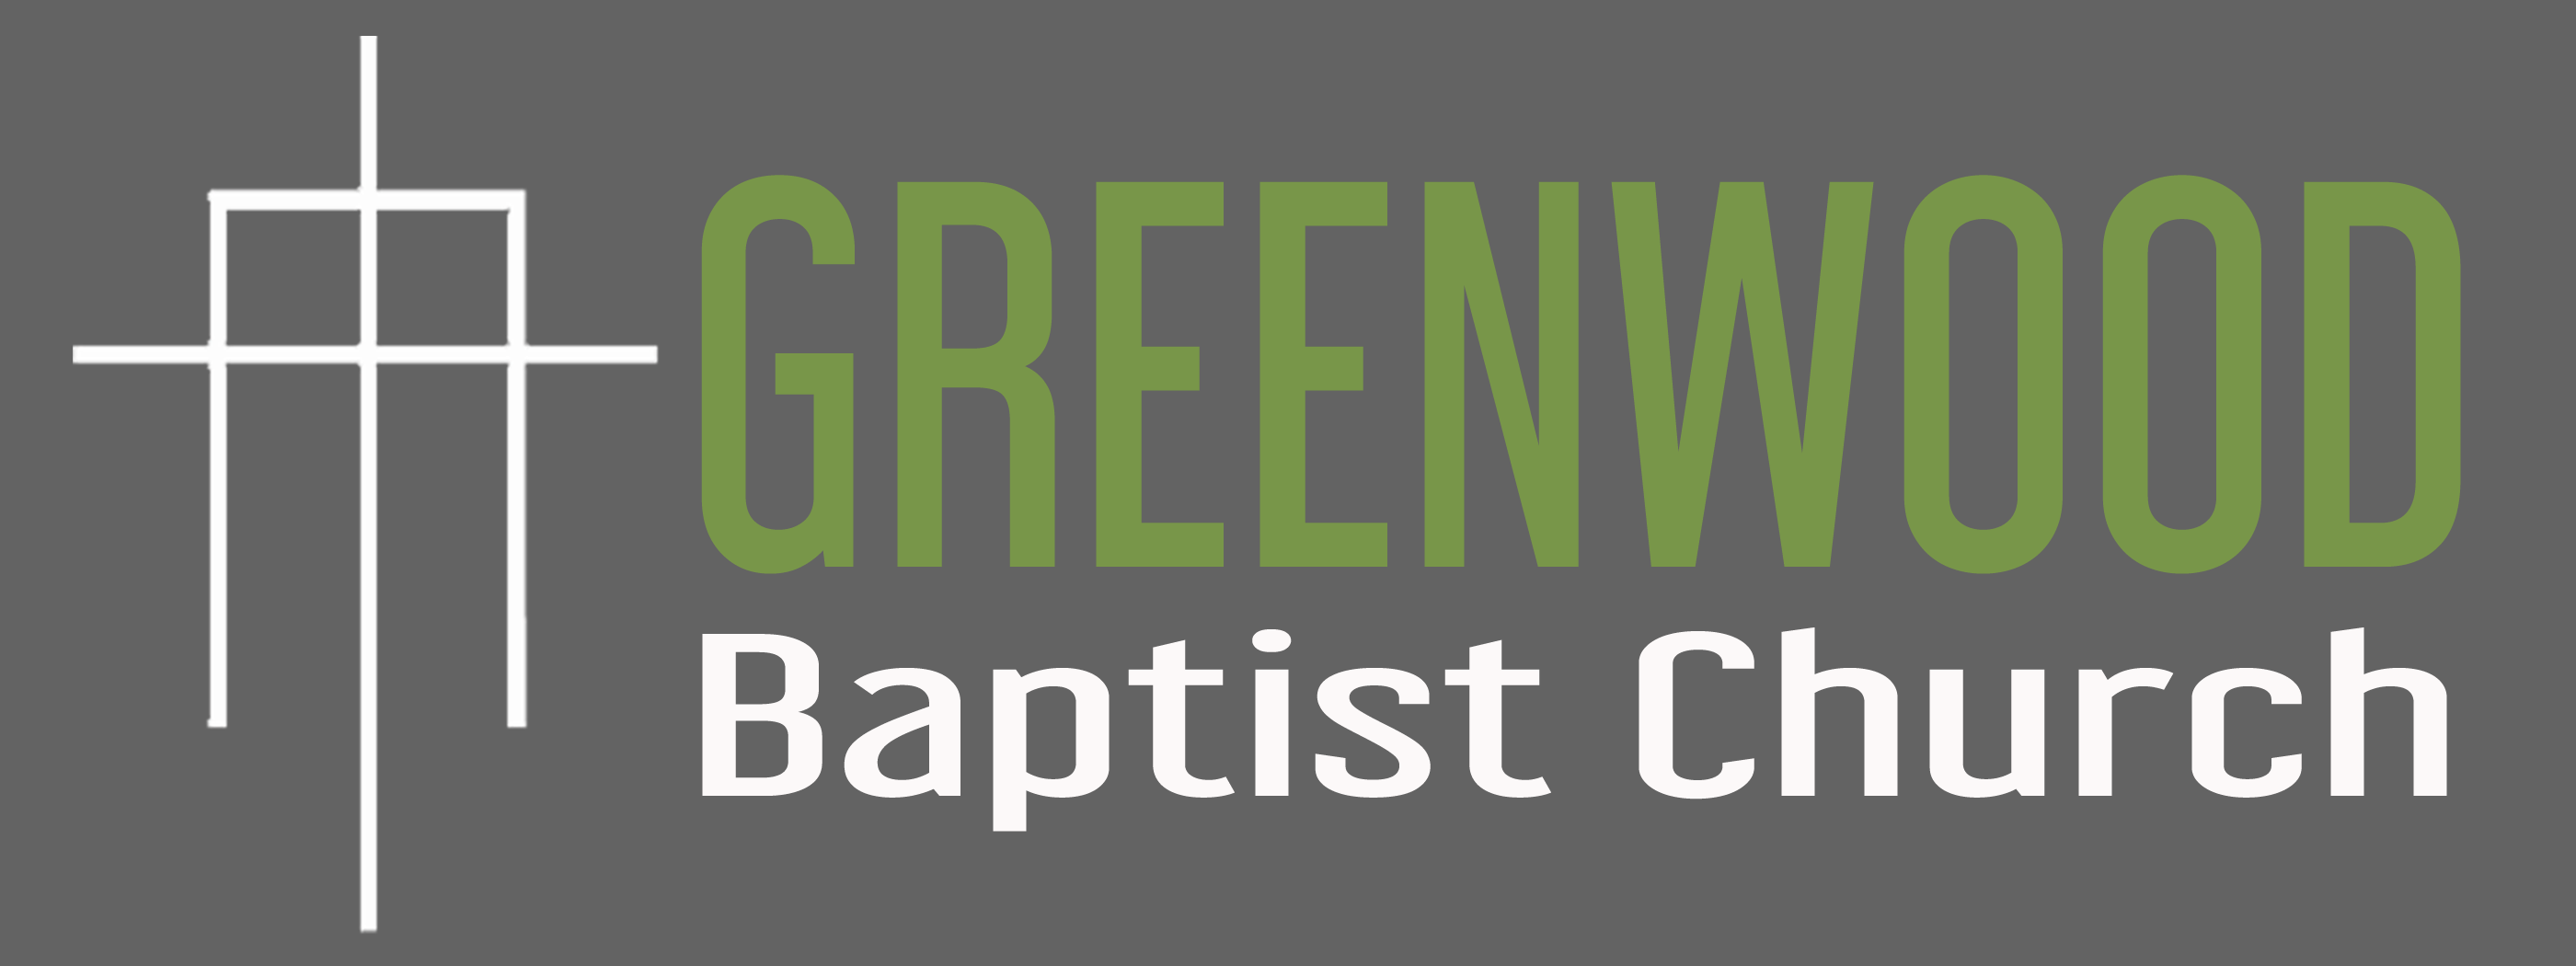 Greenwood Baptist Church – Greenwood, South Carolina